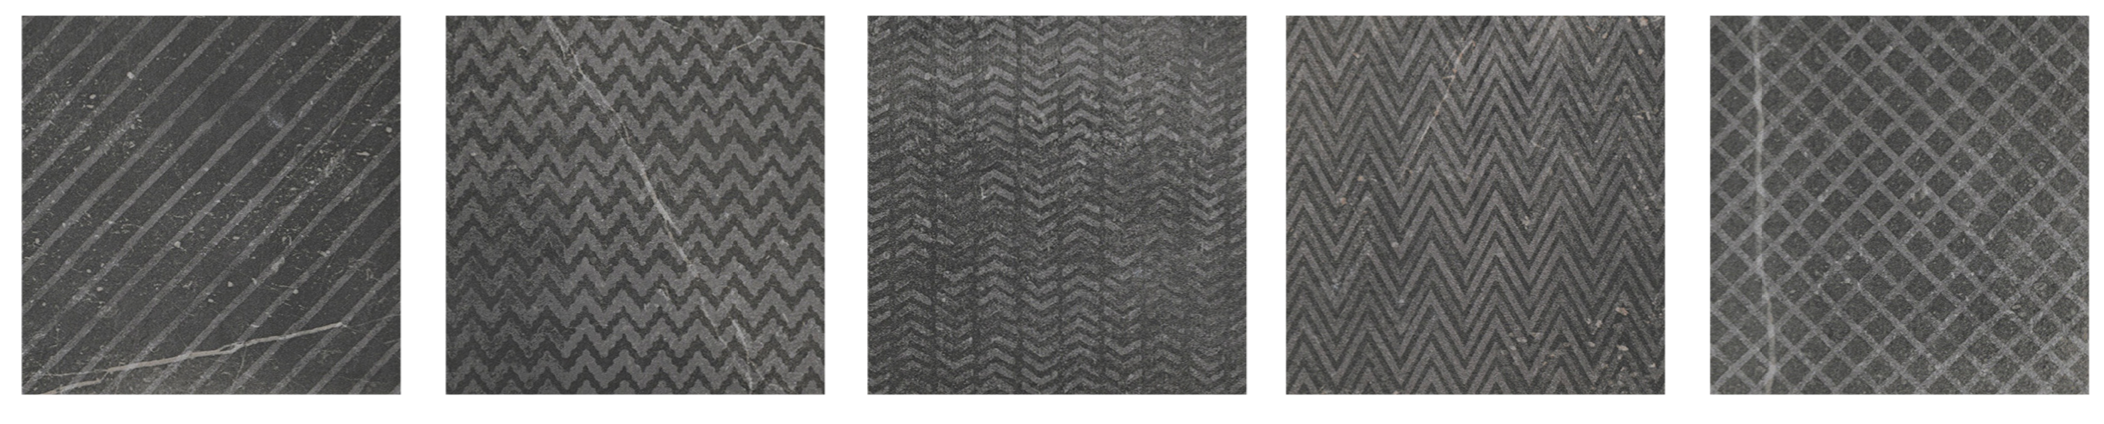 "Dark (Black) Decor  7.88"" x 7.88"" 